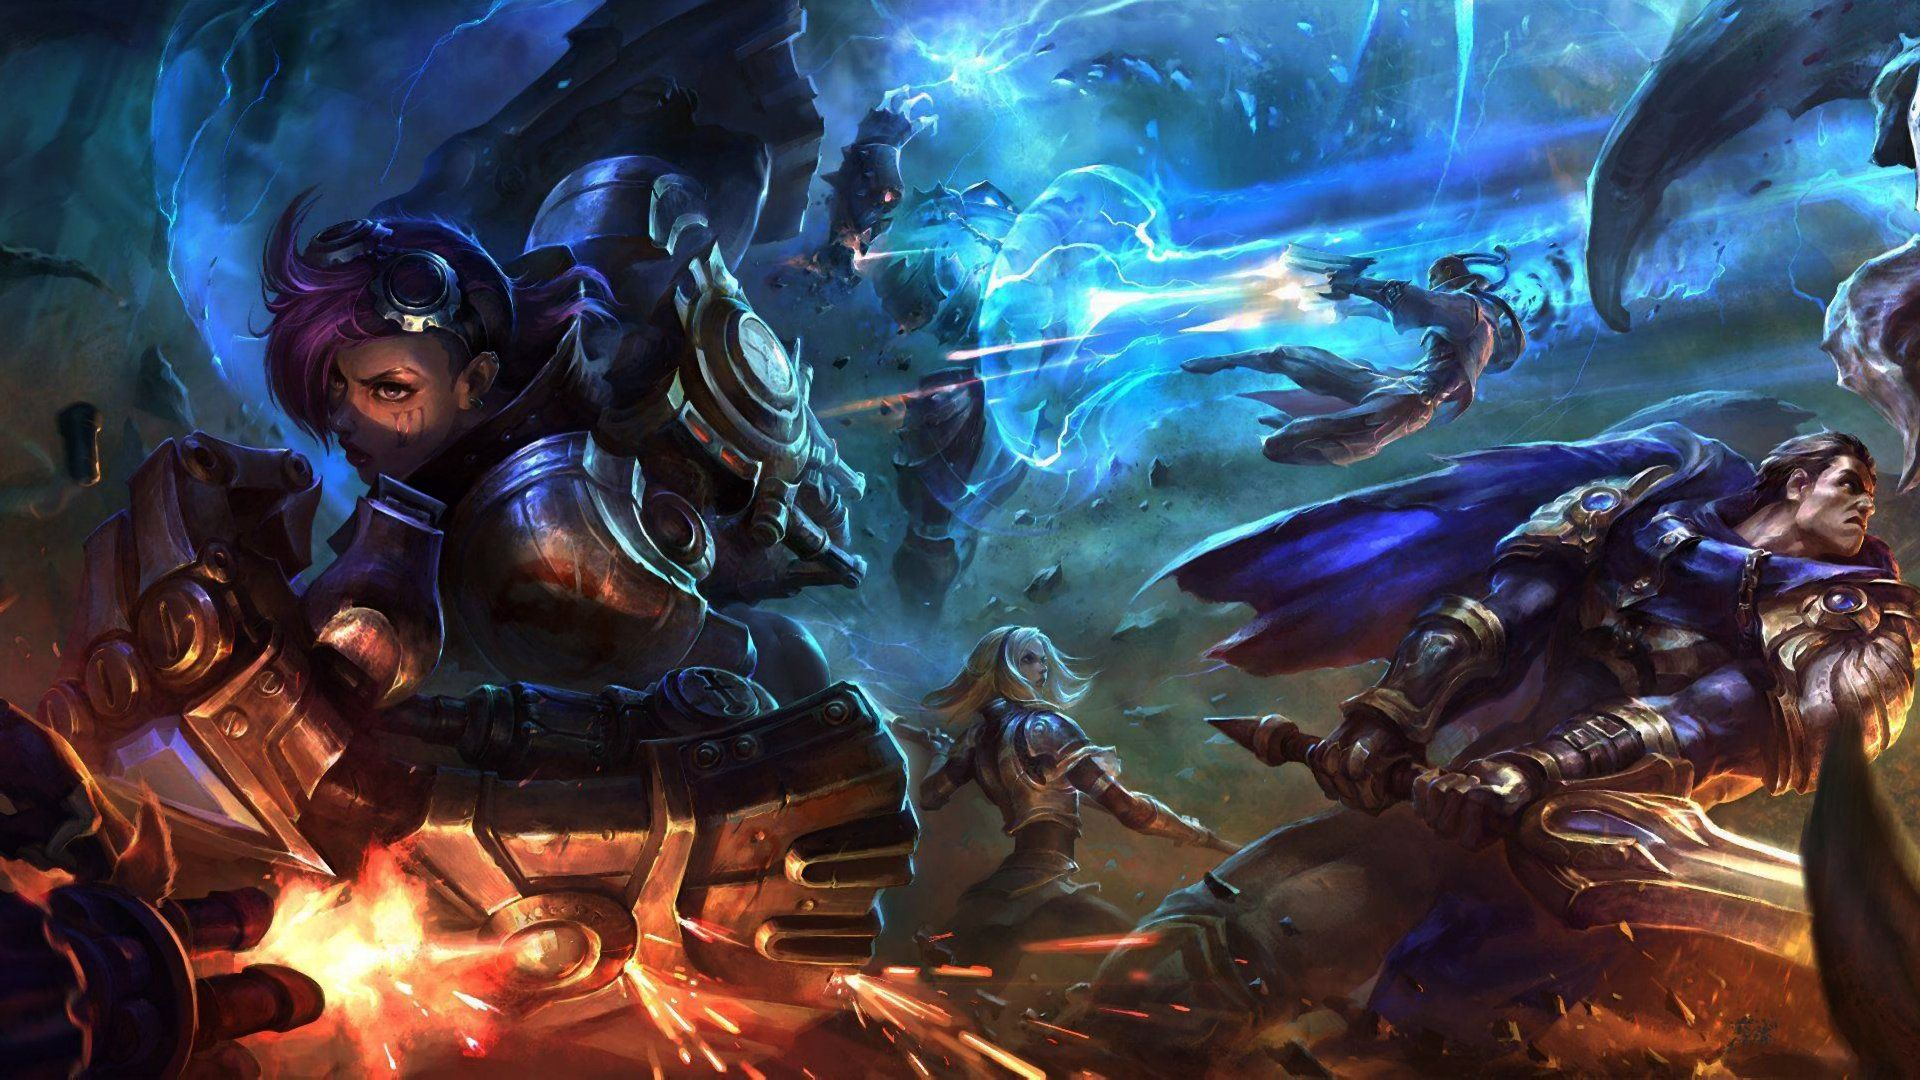 League of legends backgrounds wallpaper hd wallpapers pinterest league of legends backgrounds wallpaper voltagebd Image collections